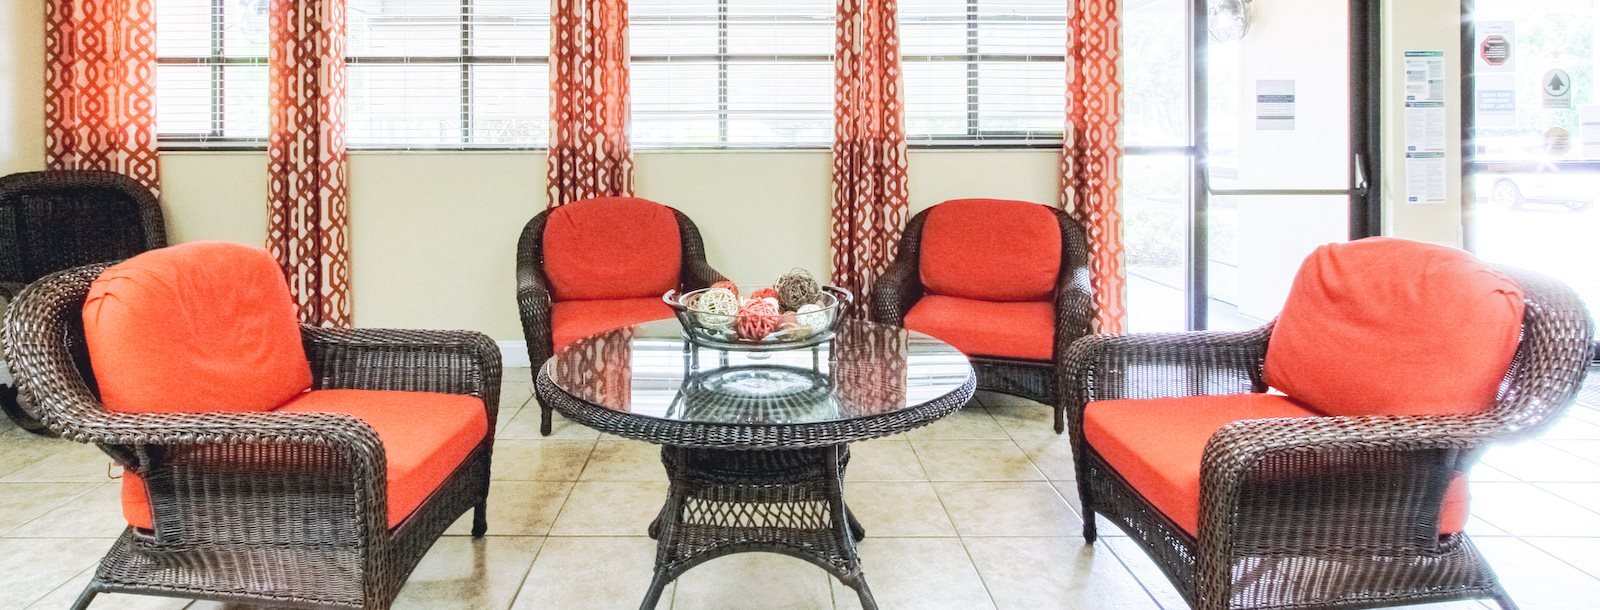 comfortable lobby sitting area with wicker chairs and couch with thick cushions